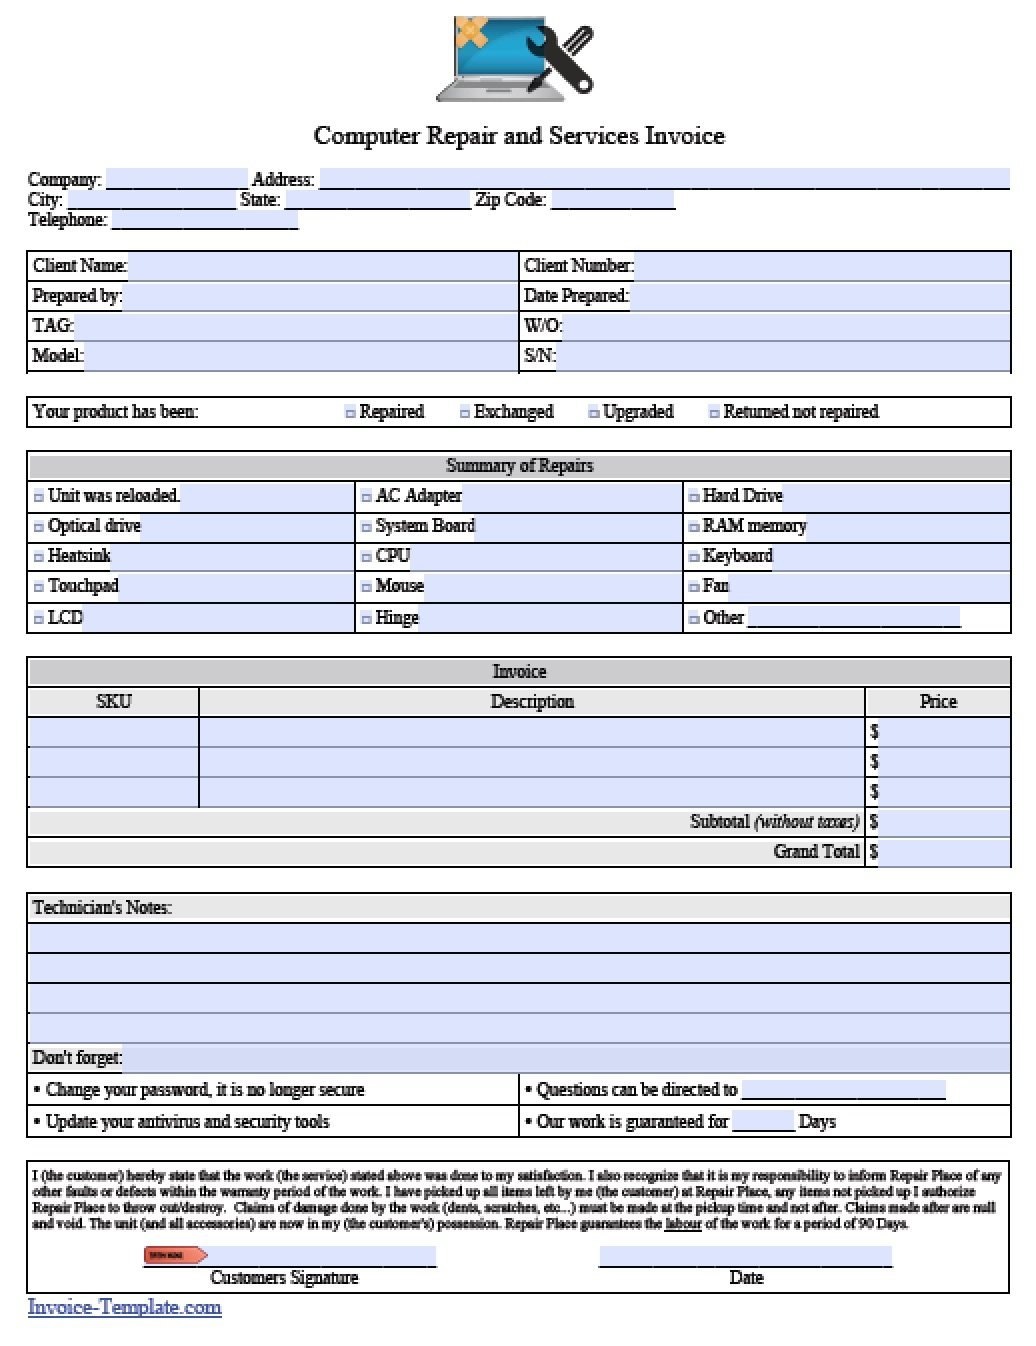 Free Computer Repair Service Invoice Template